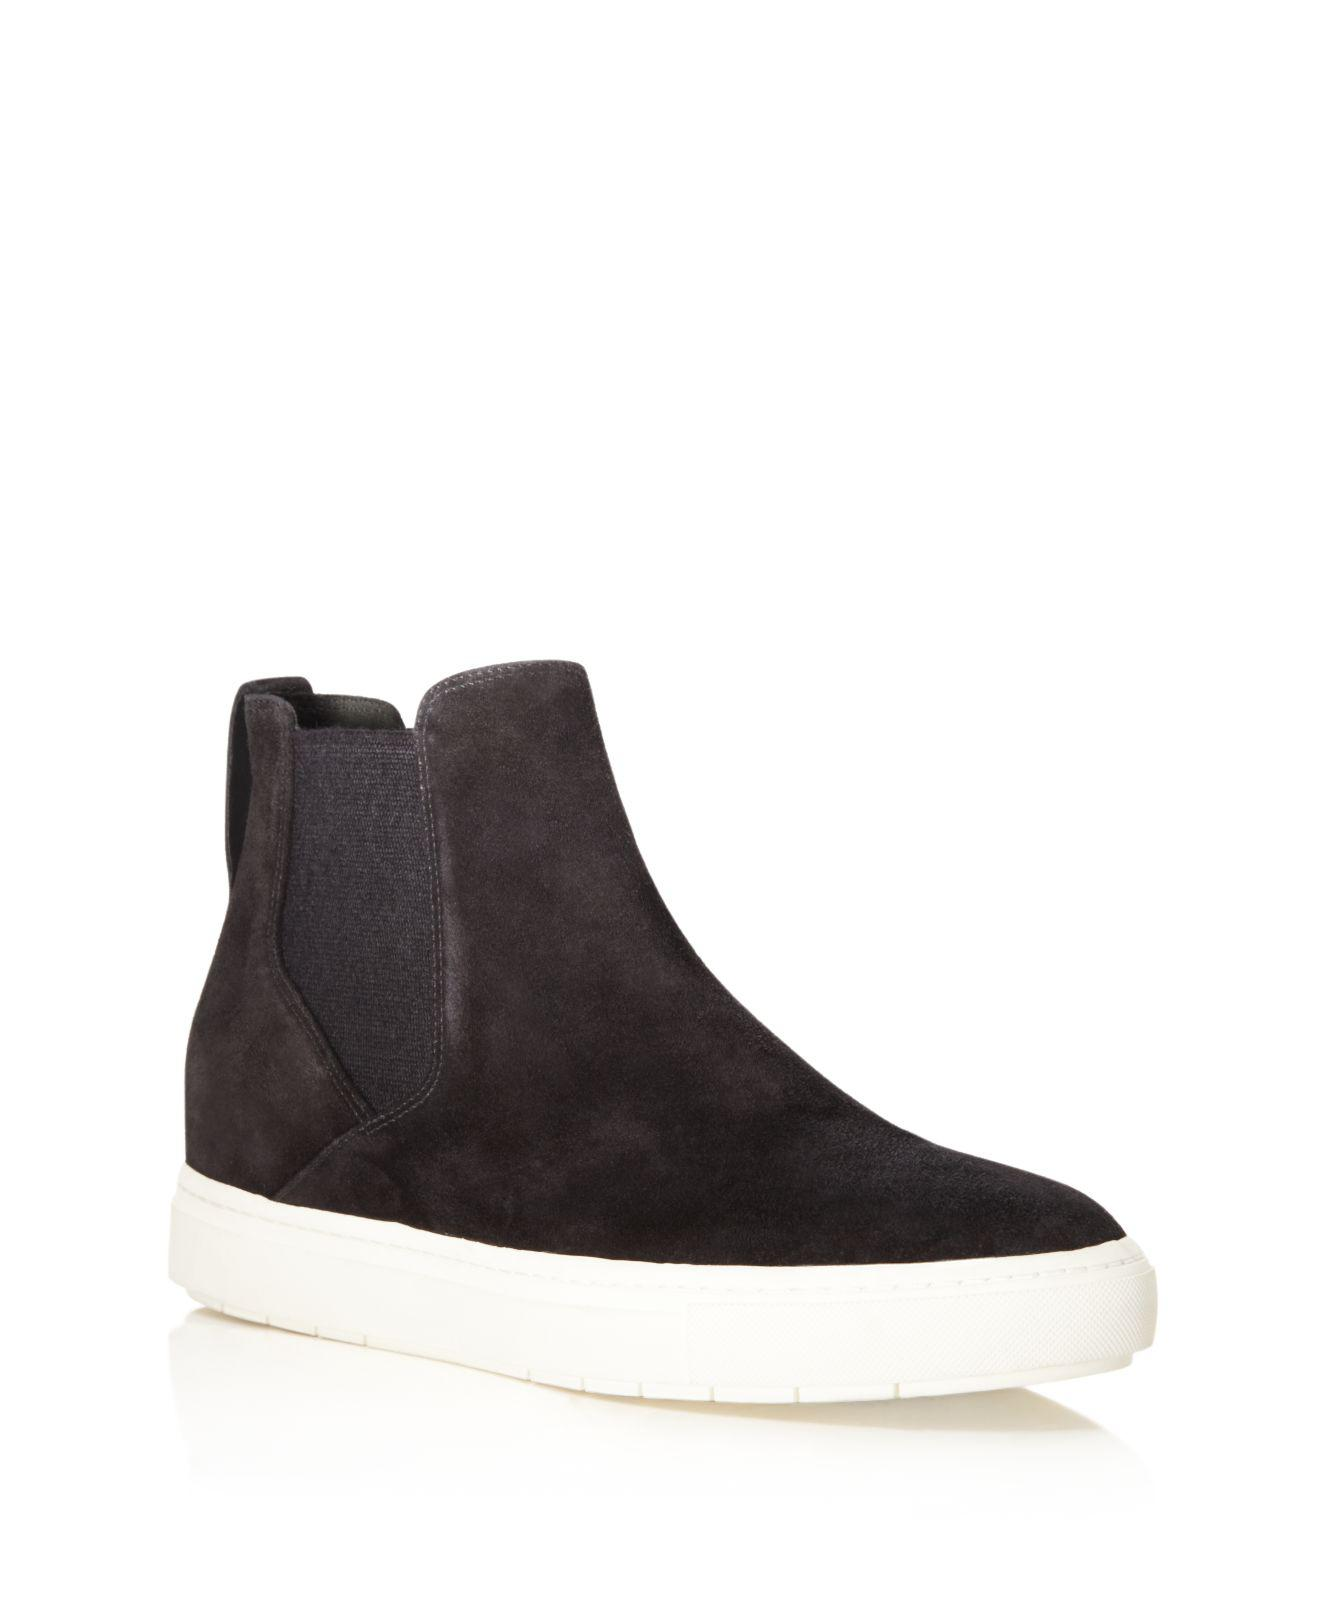 1581e68d3471 Lyst - Vince Newlyn High Top Slip On Sneakers in Black for Men